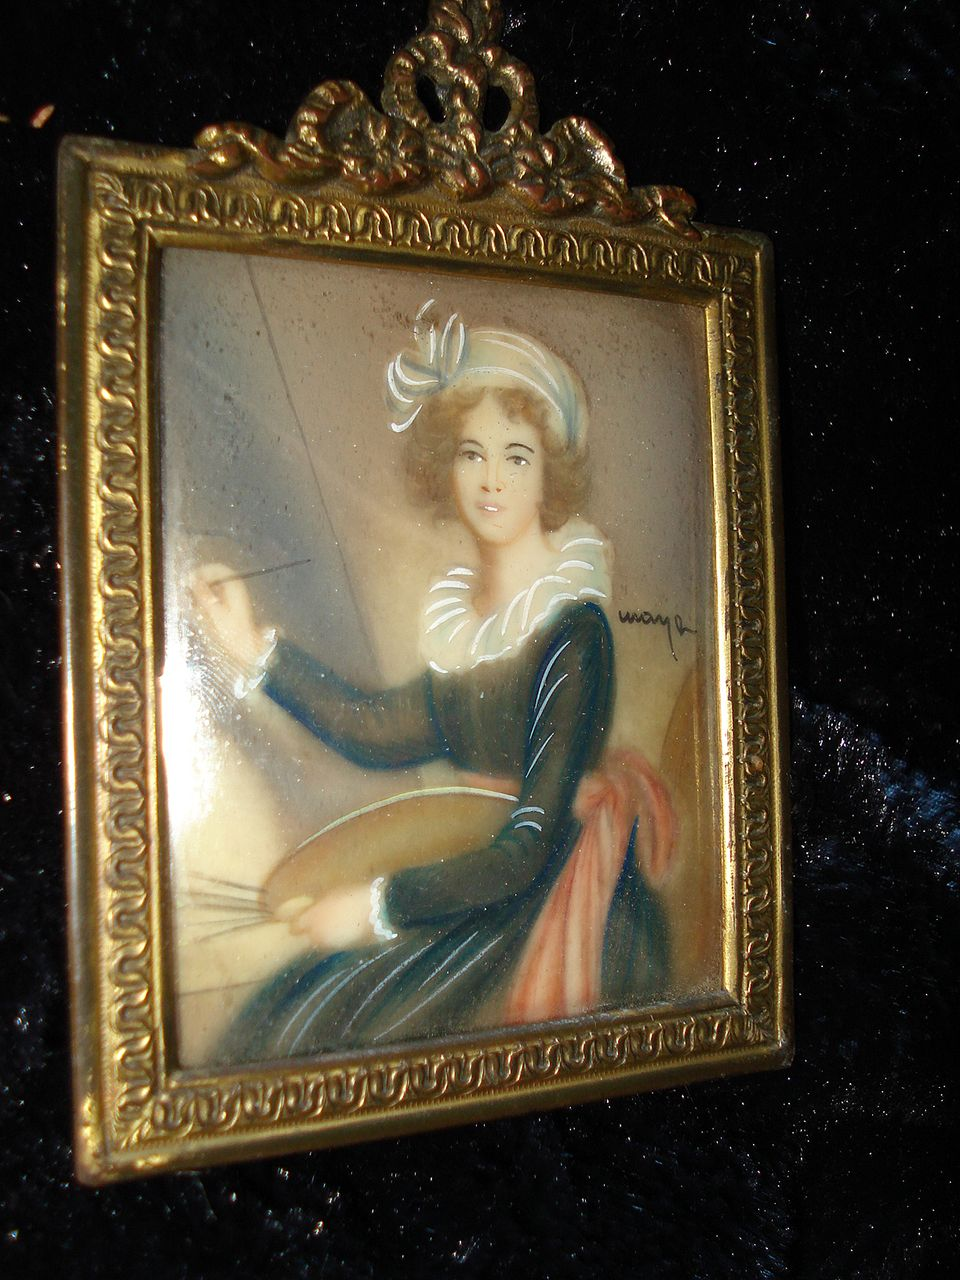 Miniature Self Portrait Vigee Le Brun